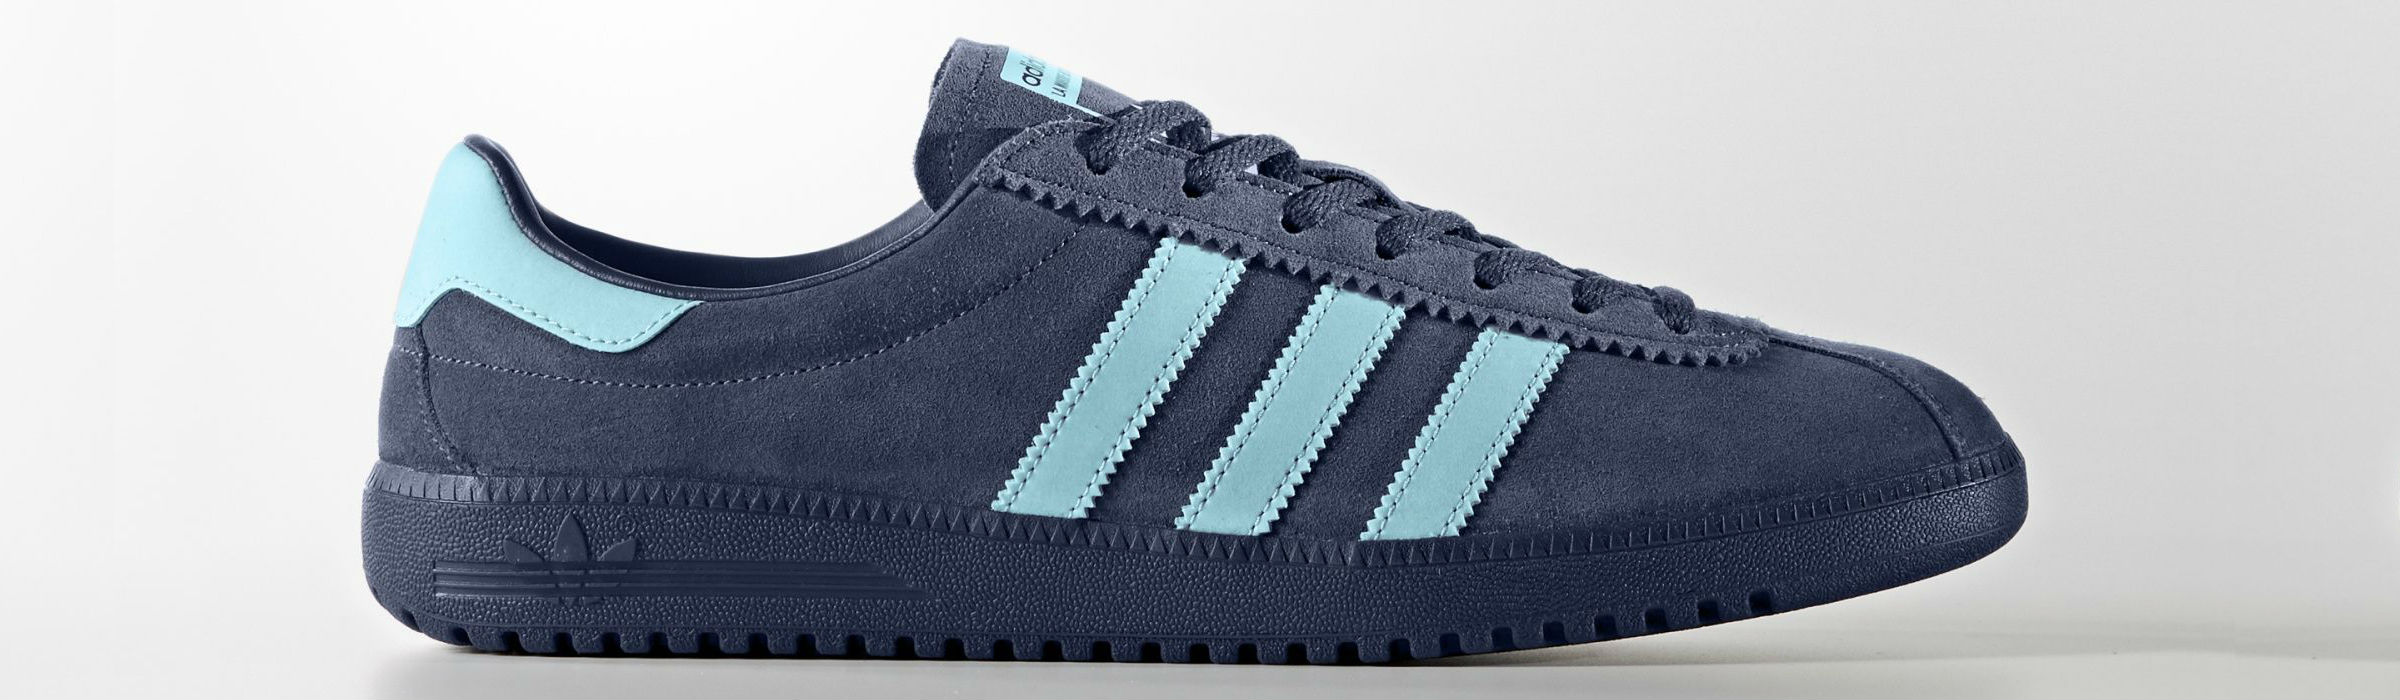 Adidas Bermuda Shoes Mystery Blue Clear Mystery Blue Full1